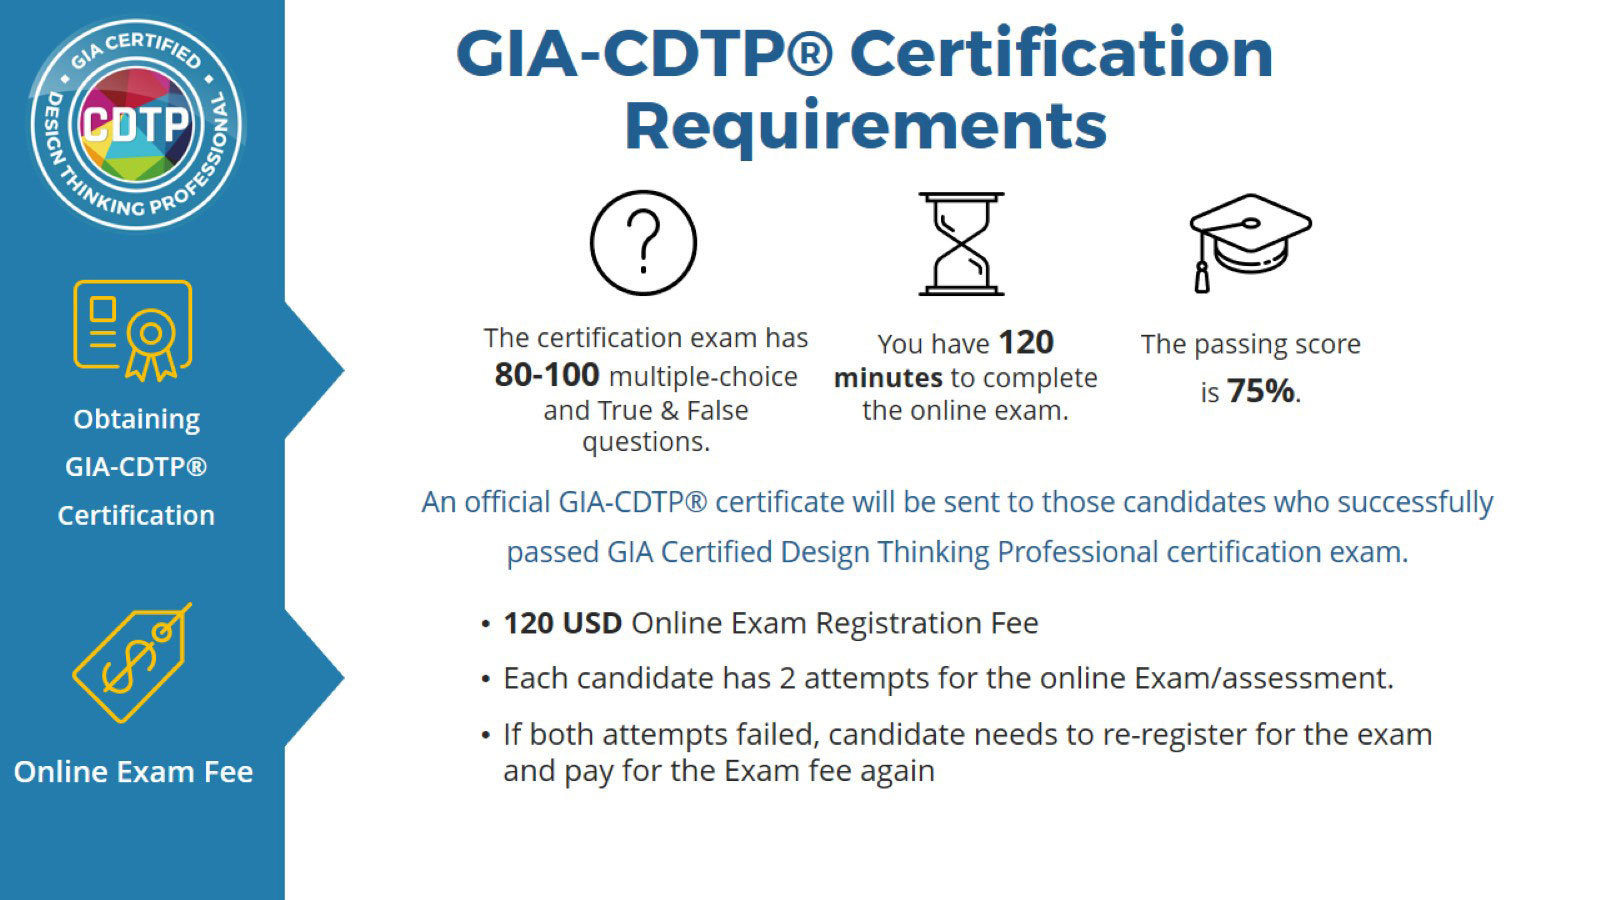 GIA Certified Design Thinking Professional